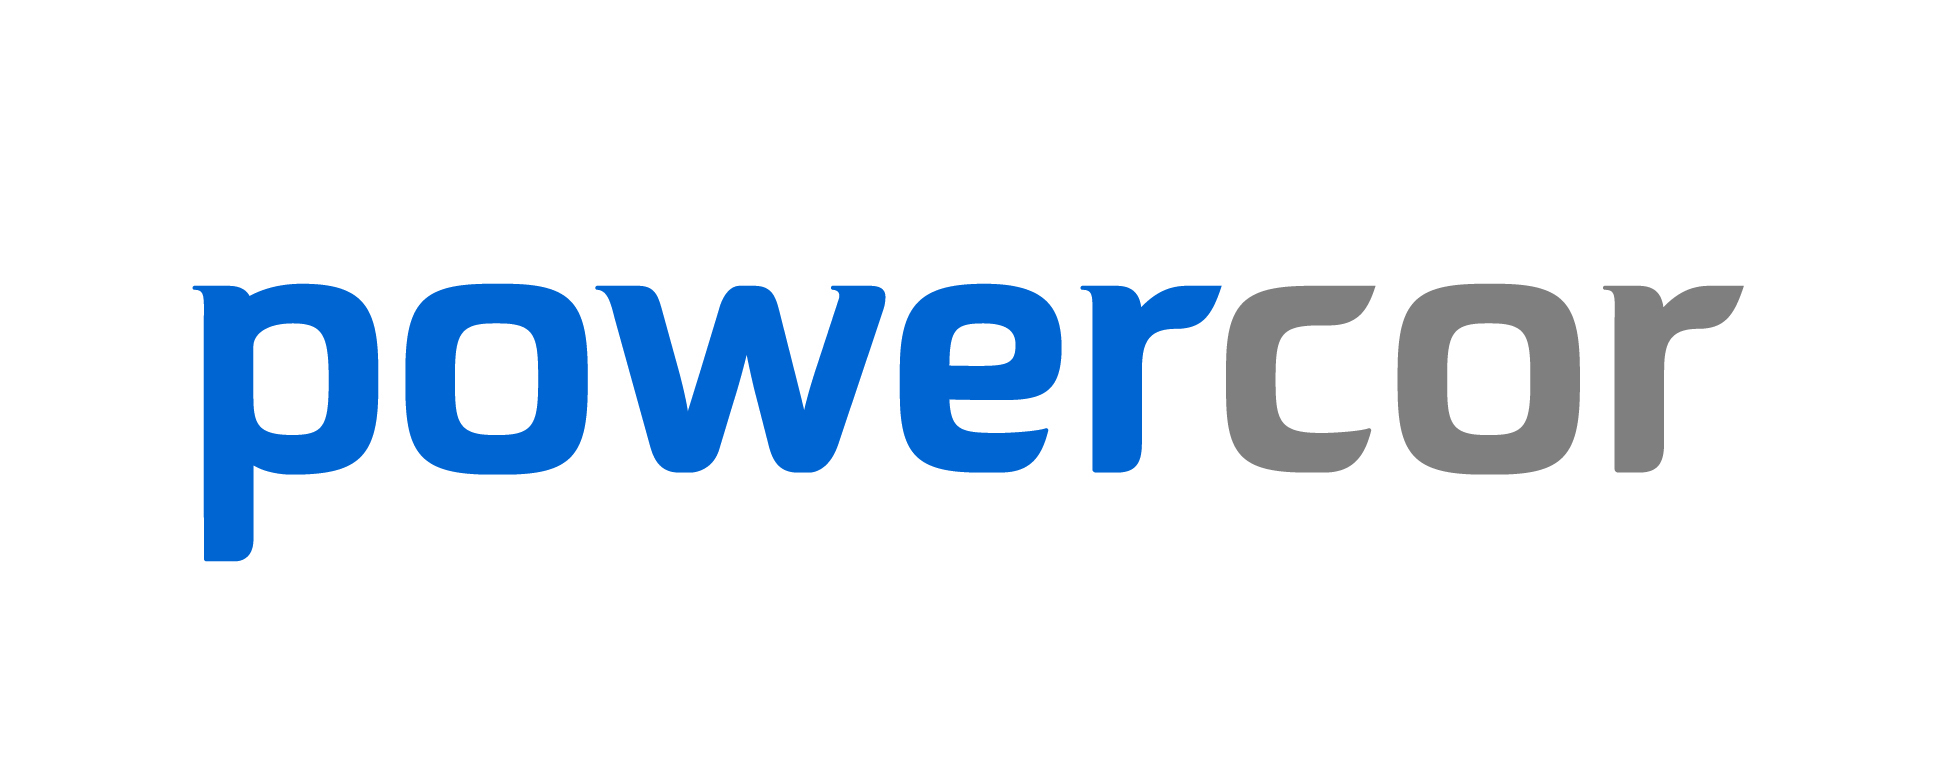 Powercor_primary_cmyk